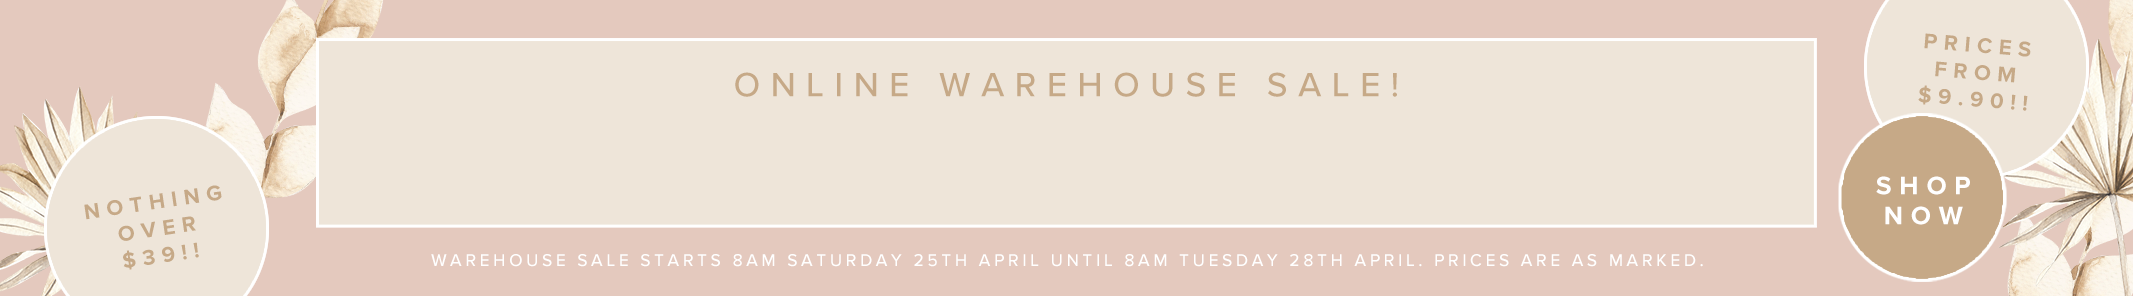 Mura Fashion - Warehouse Sale - $29